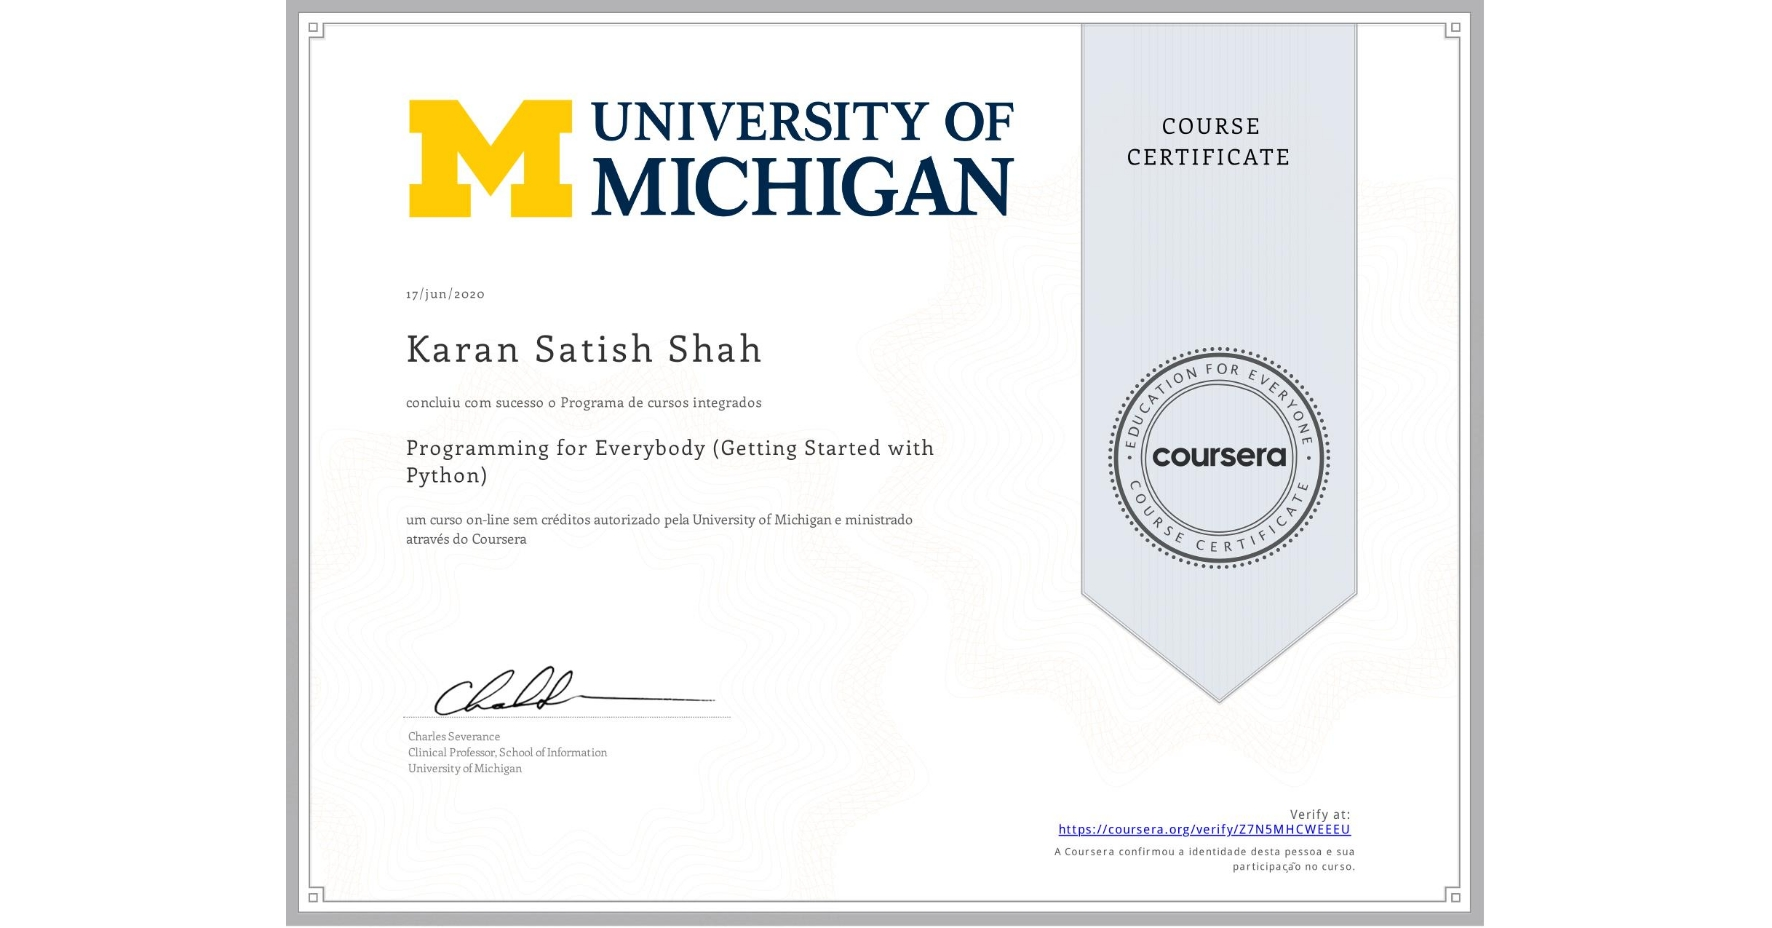 View certificate for Karan Satish Shah, Programming for Everybody (Getting Started with Python), an online non-credit course authorized by University of Michigan and offered through Coursera